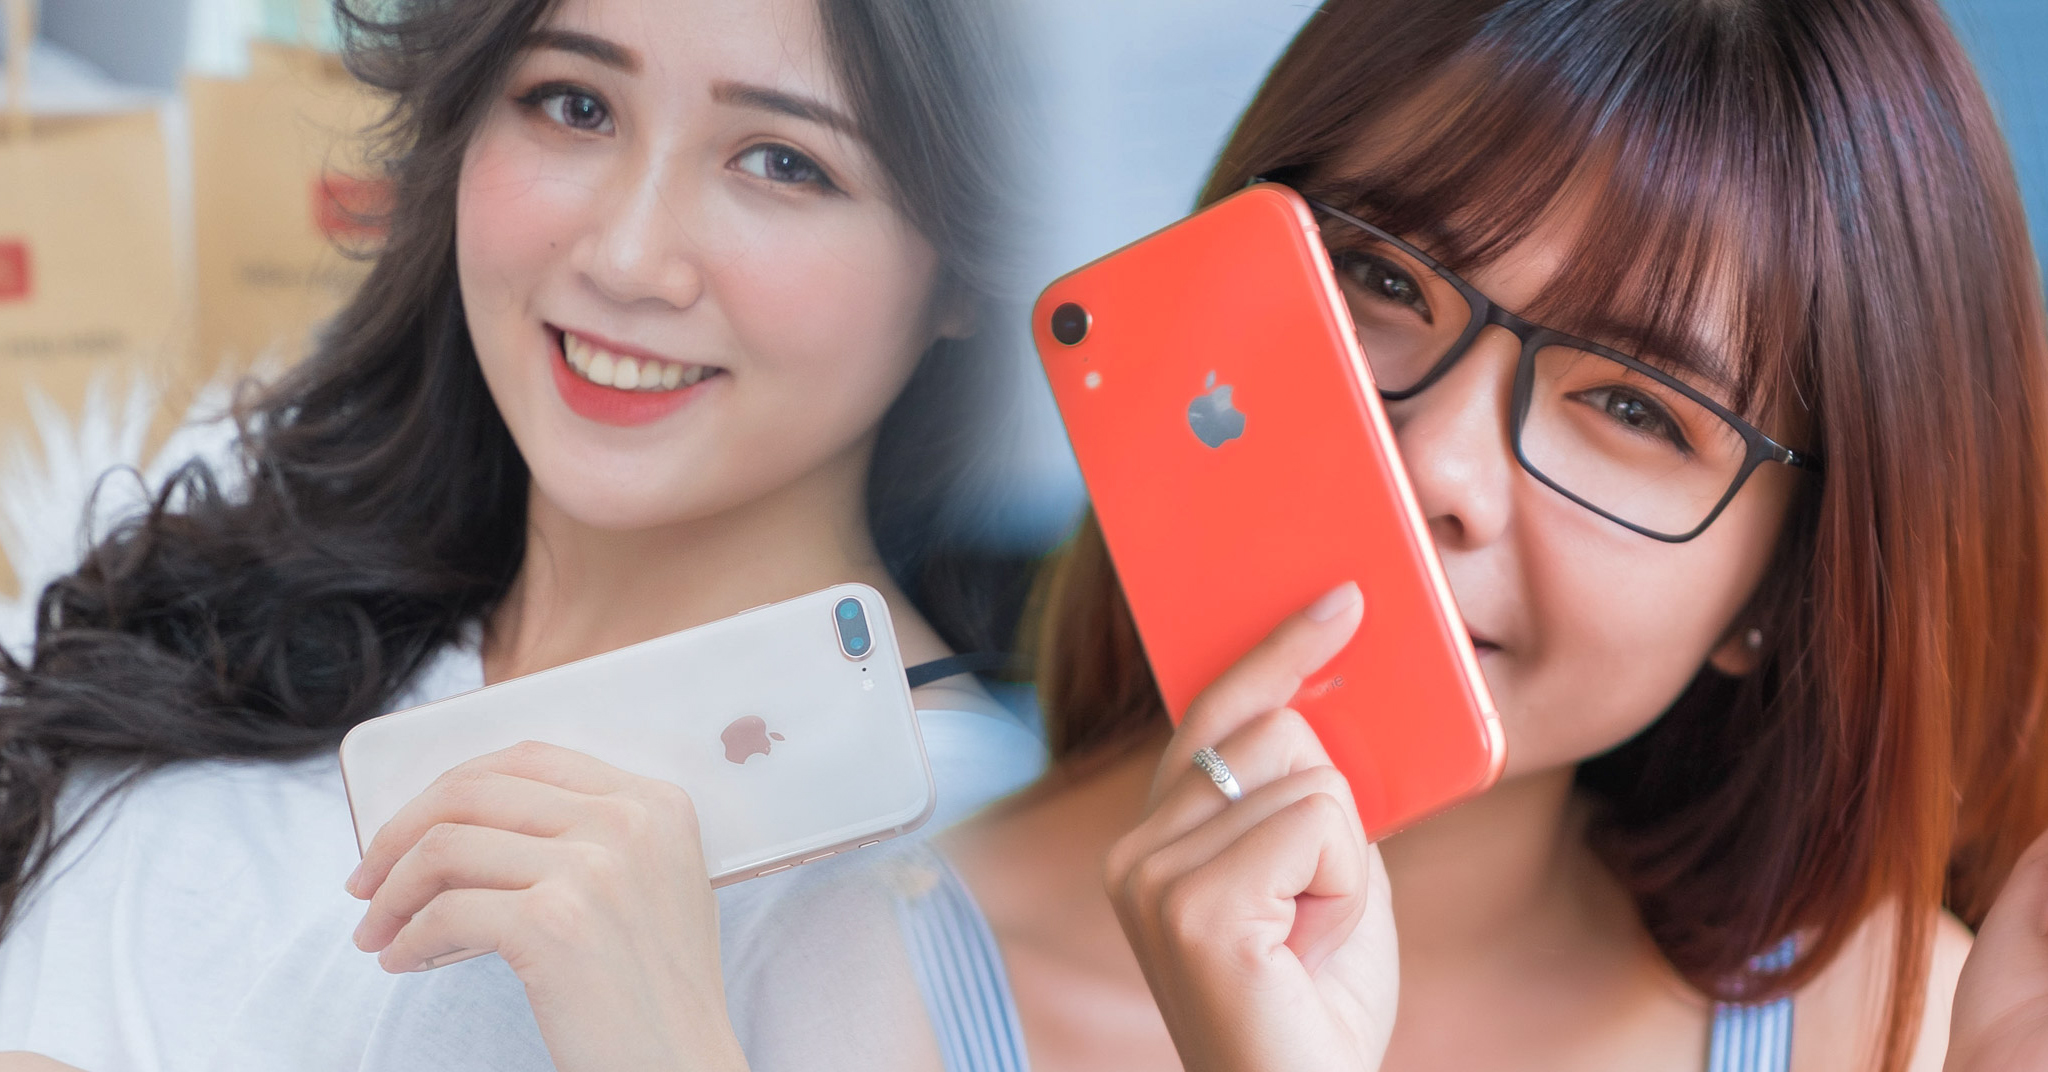 Sforum - Latest technology information page iphone-8-plus-2-cover-2 Compare iPhone XR and iPhone 8 Plus: Choose rabbit ears with 2 SIM or traditional home screen keys?